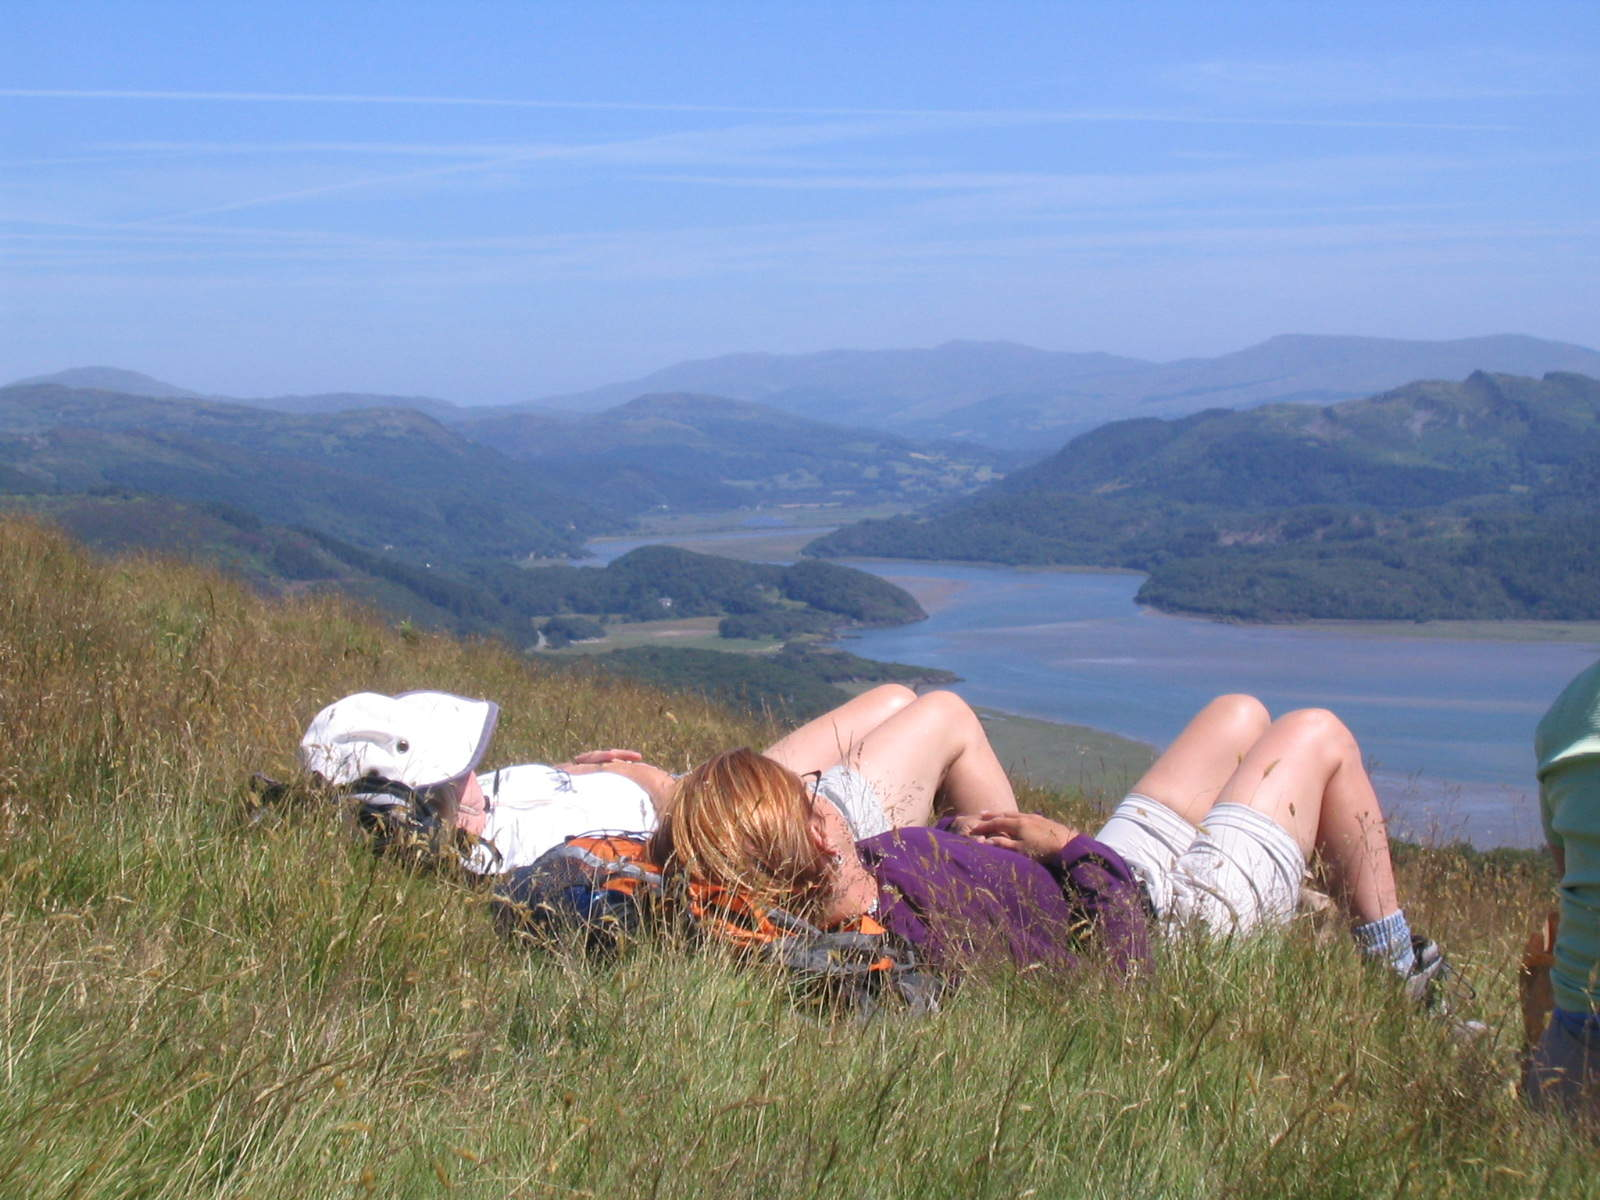 Two women taking a rest by estuary wales July